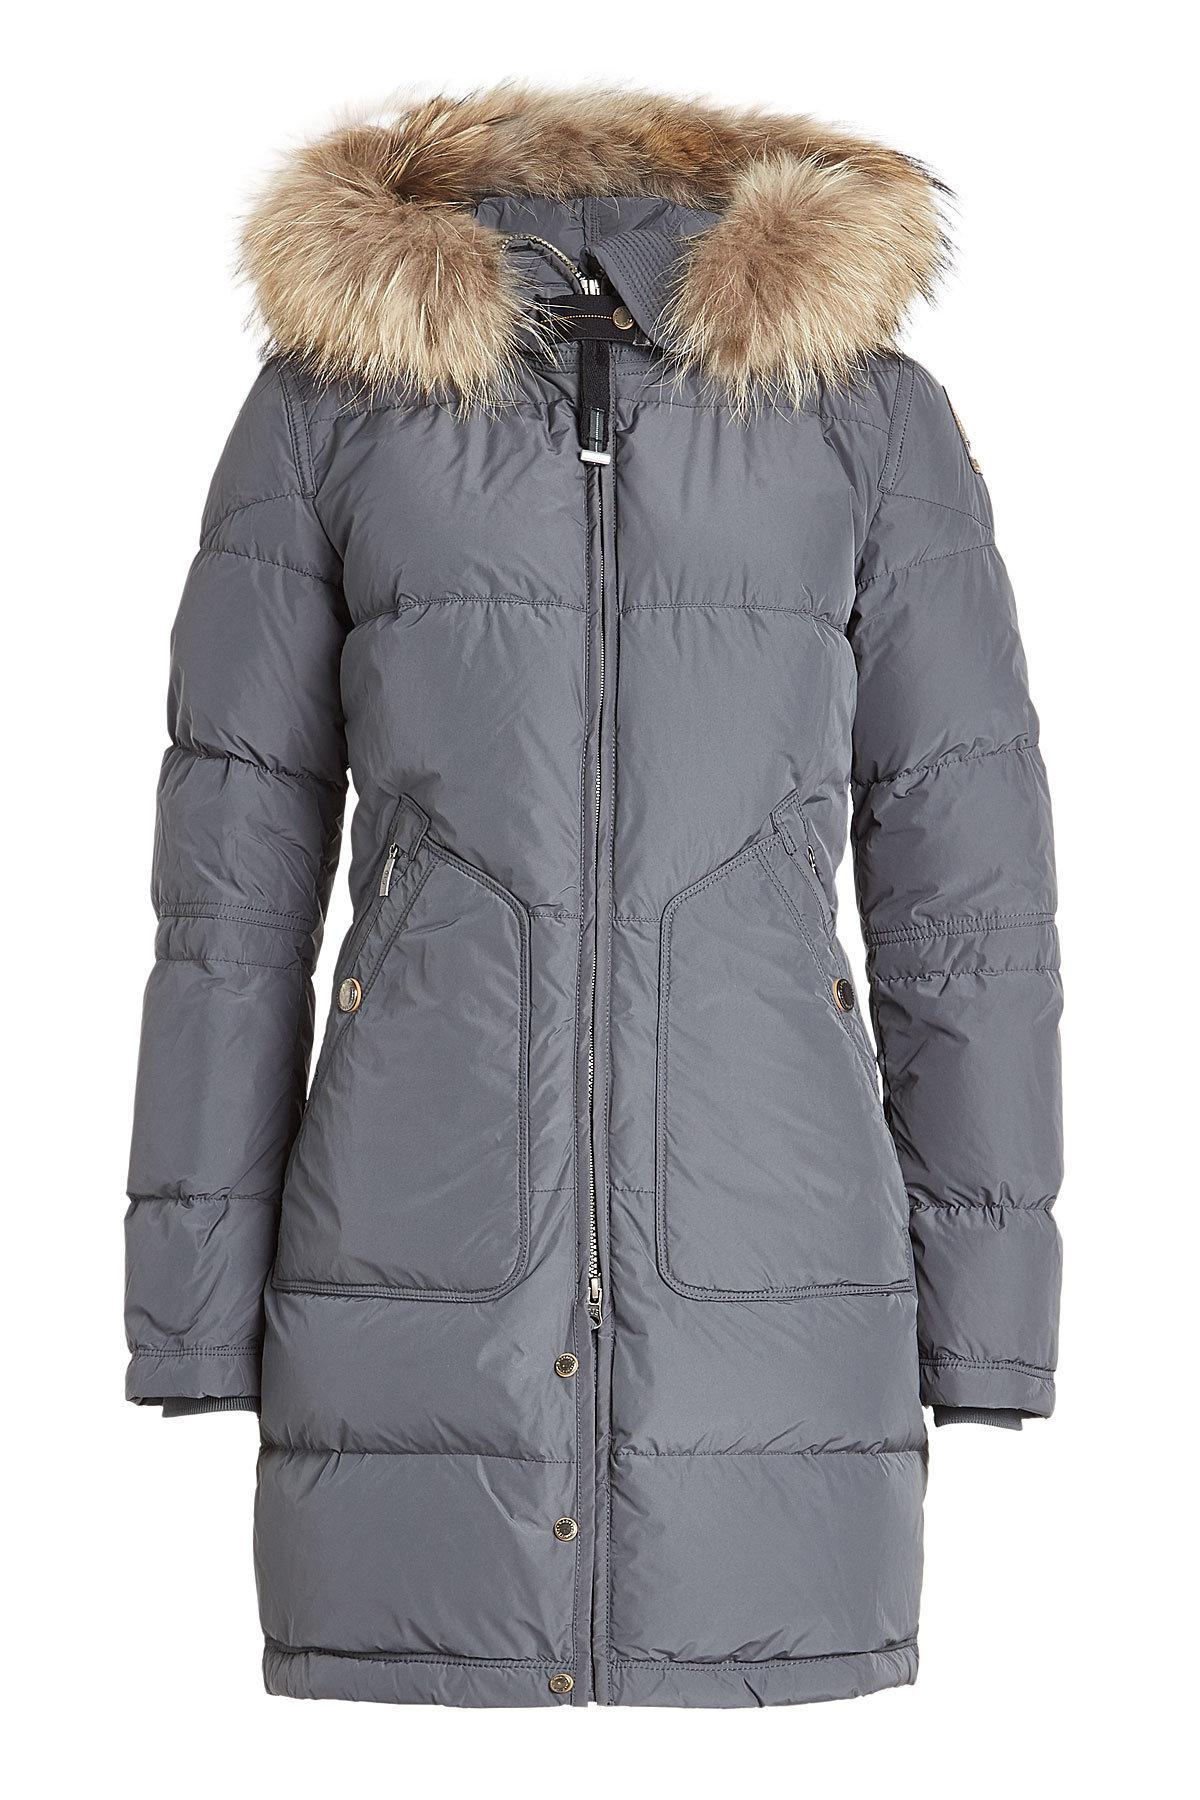 parajumpers long bear grey